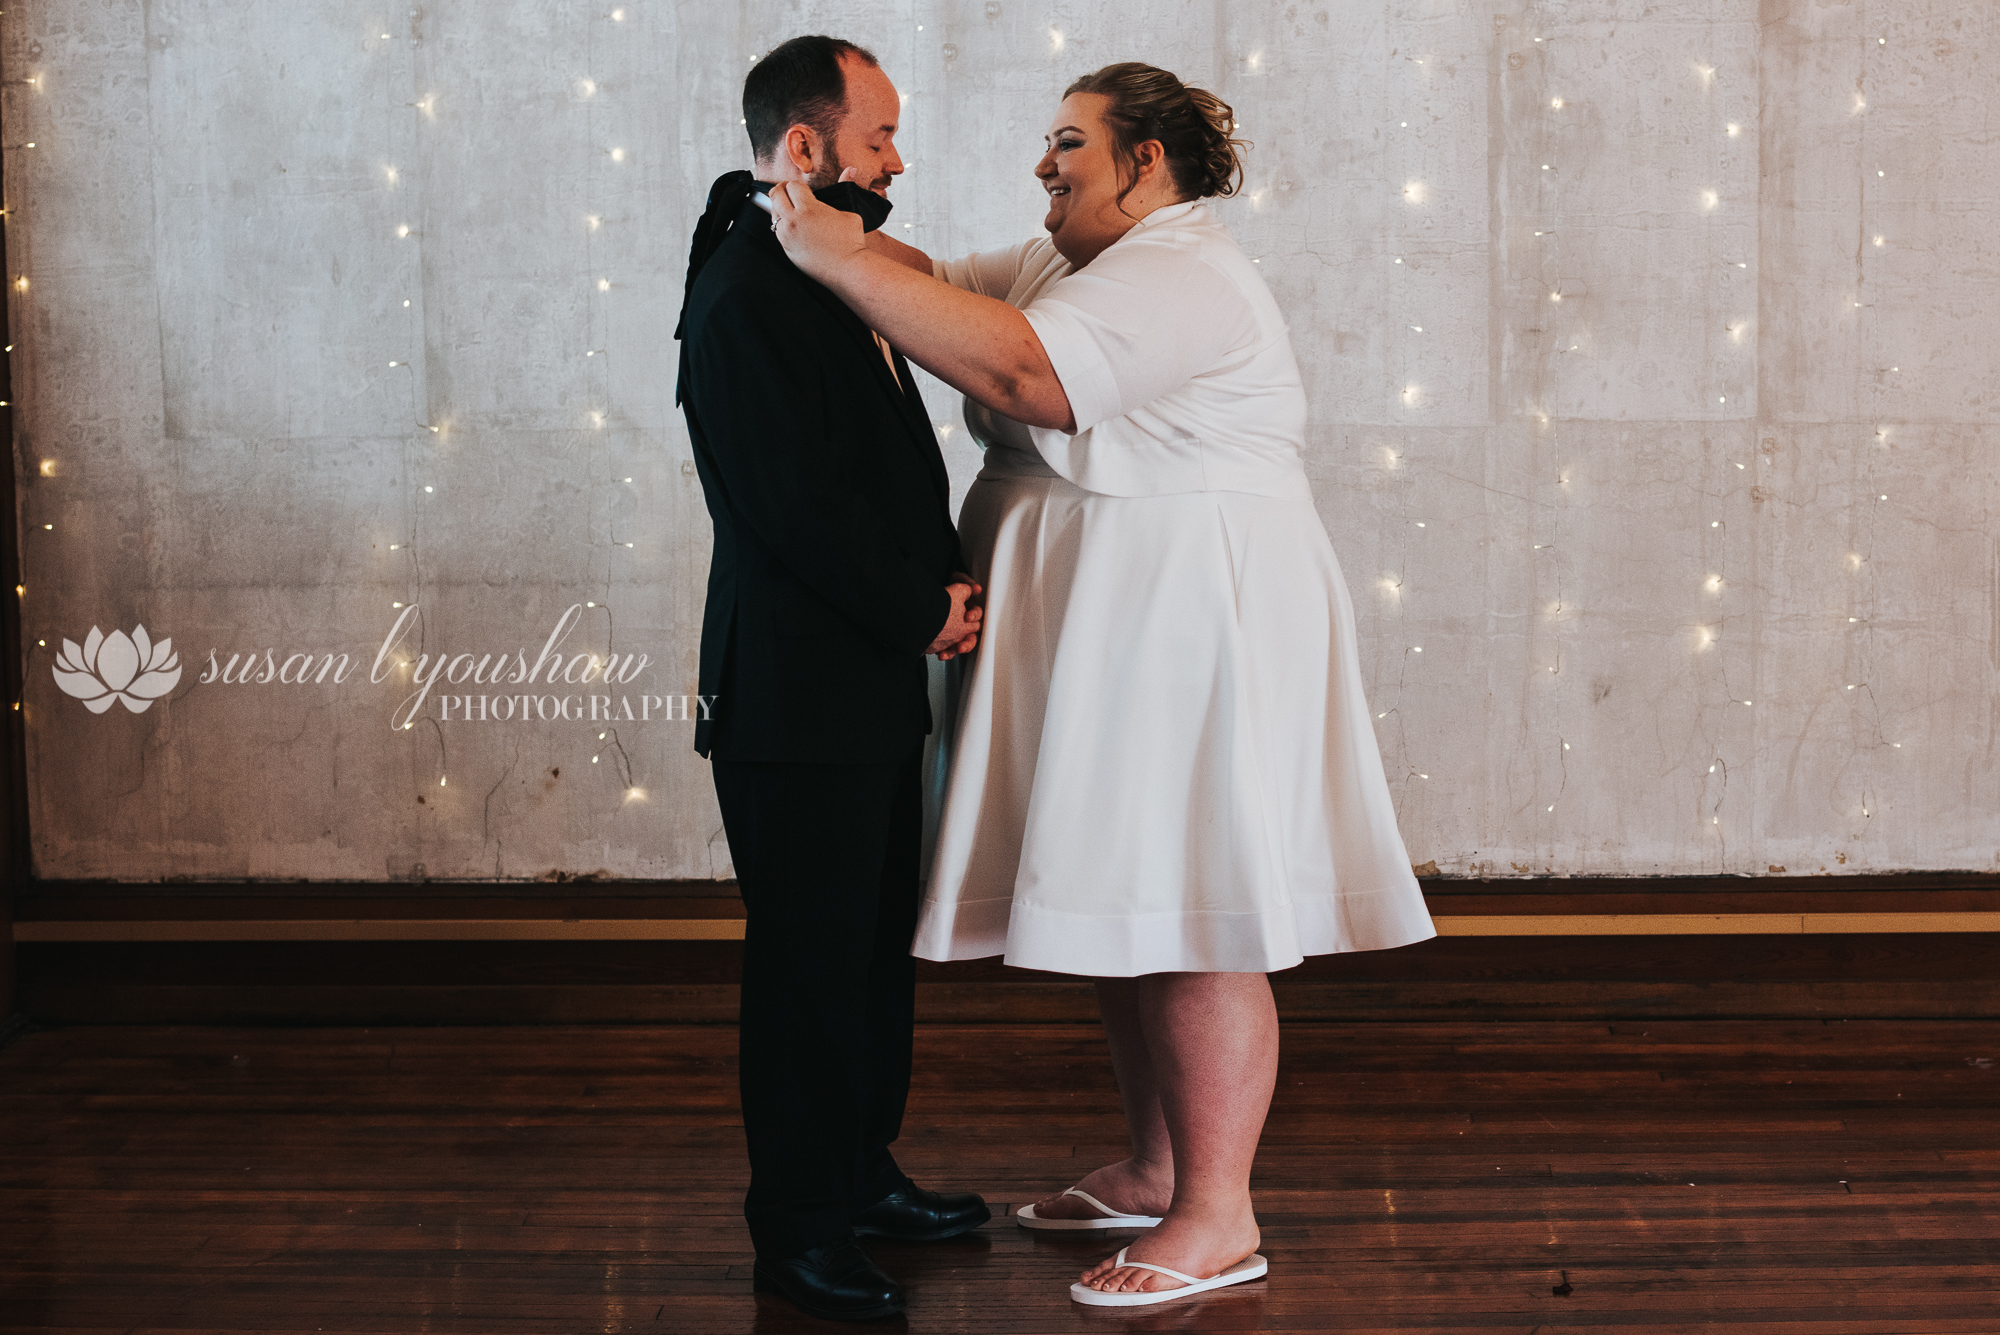 Bill and Sarah Wedding Photos 06-08-2019 SLY Photography -8.jpg